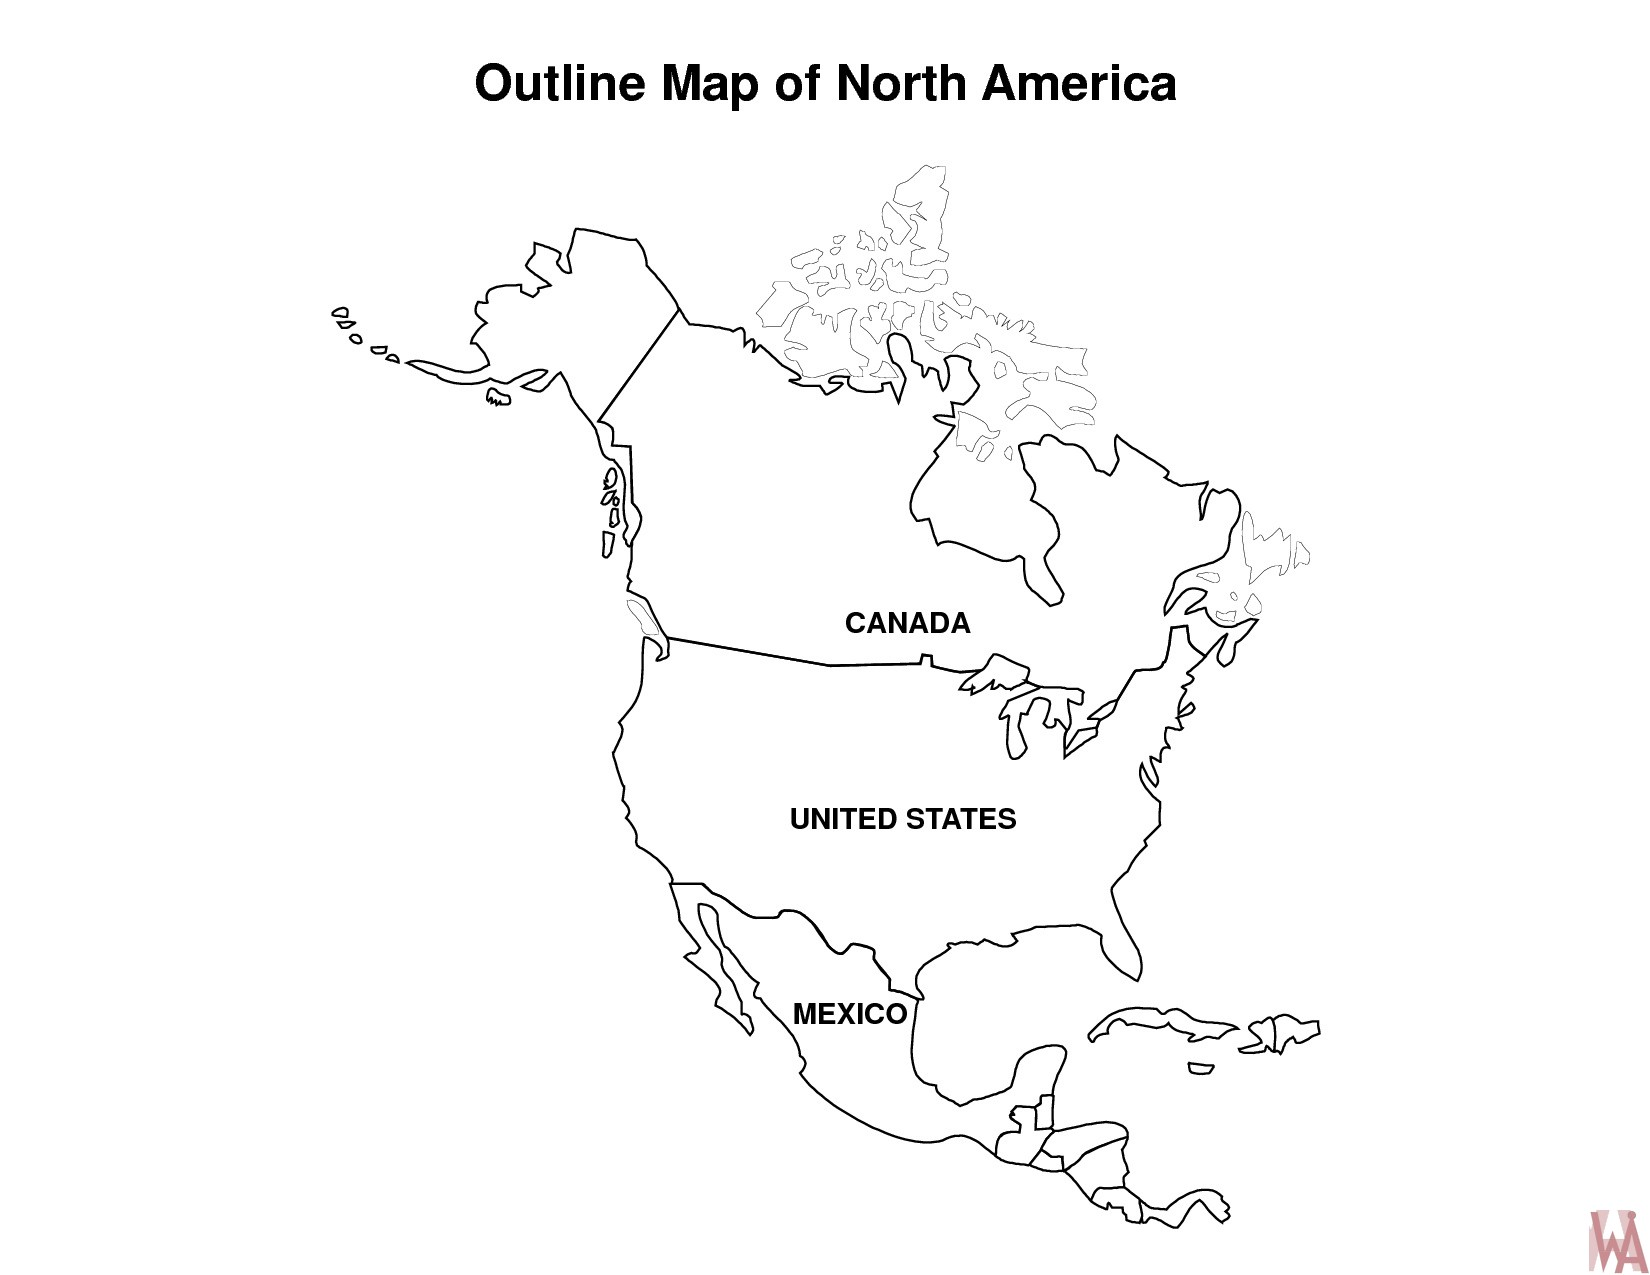 Blank Outline Map of North America